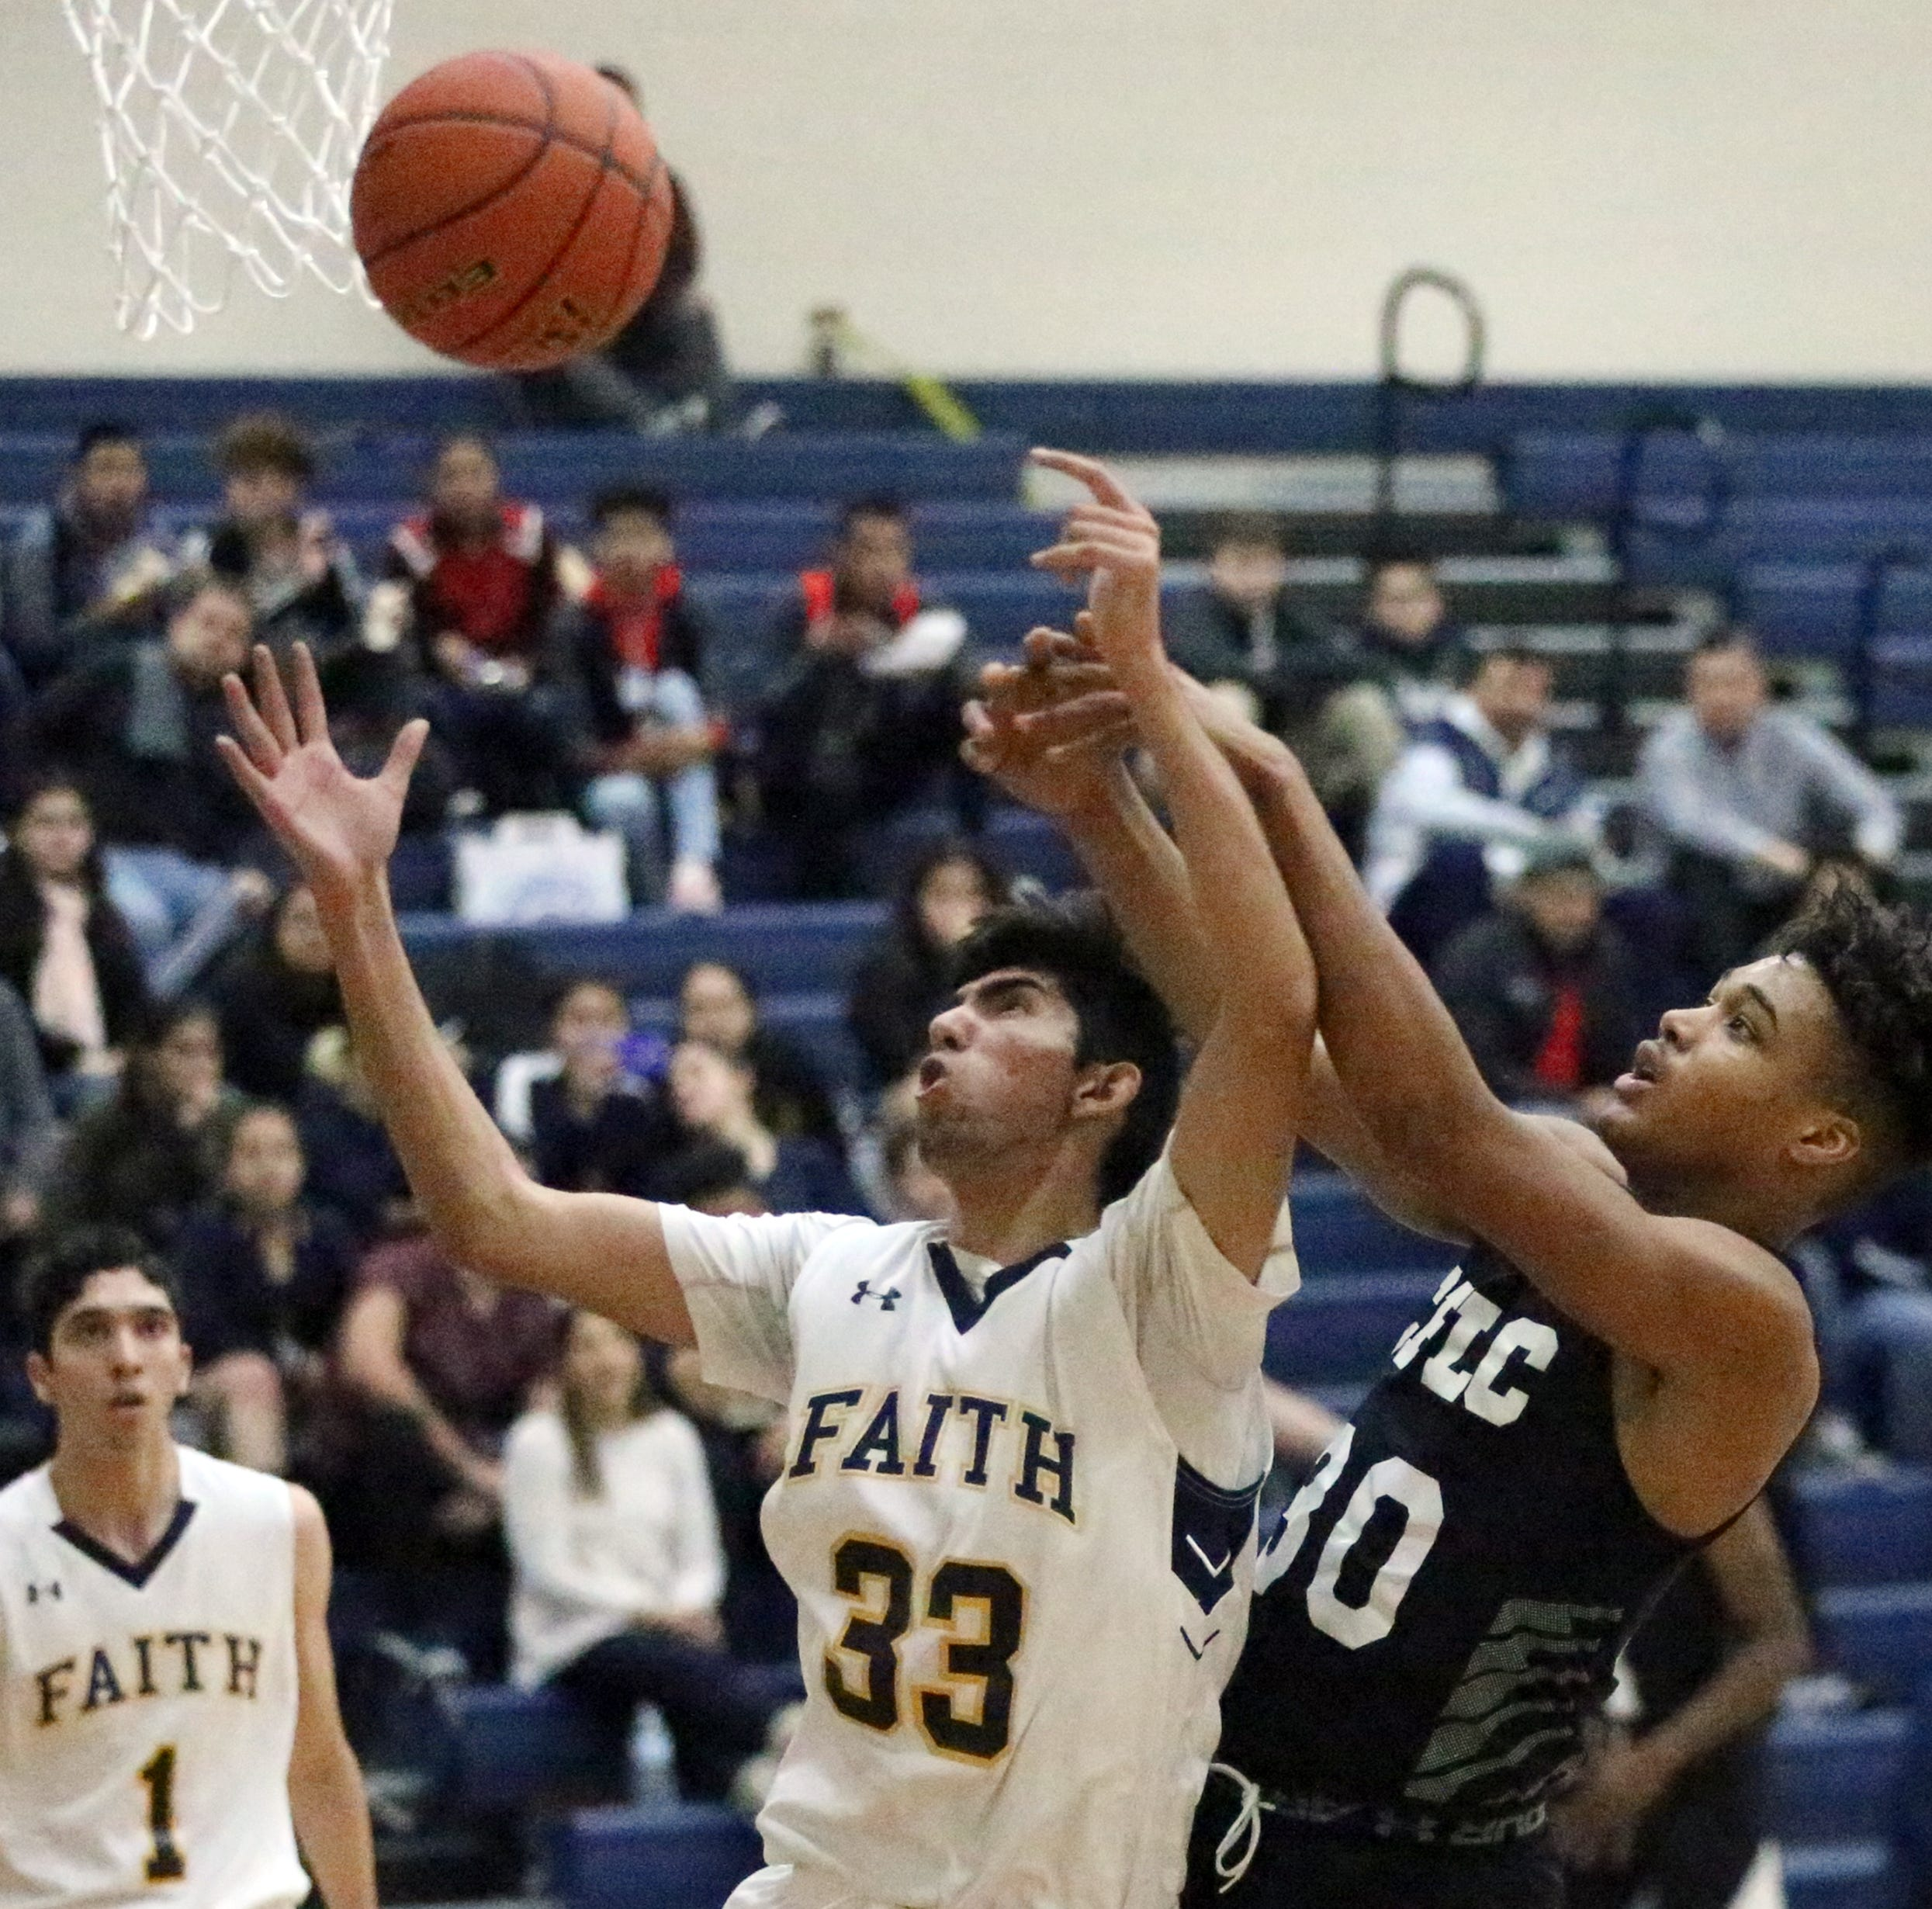 Luis Arroyo, 33, of Faith Christian Academy battles for a rebound with Kamari Smith, 30, of Cy Fair Learning Center Saturday at Del Valle High School.